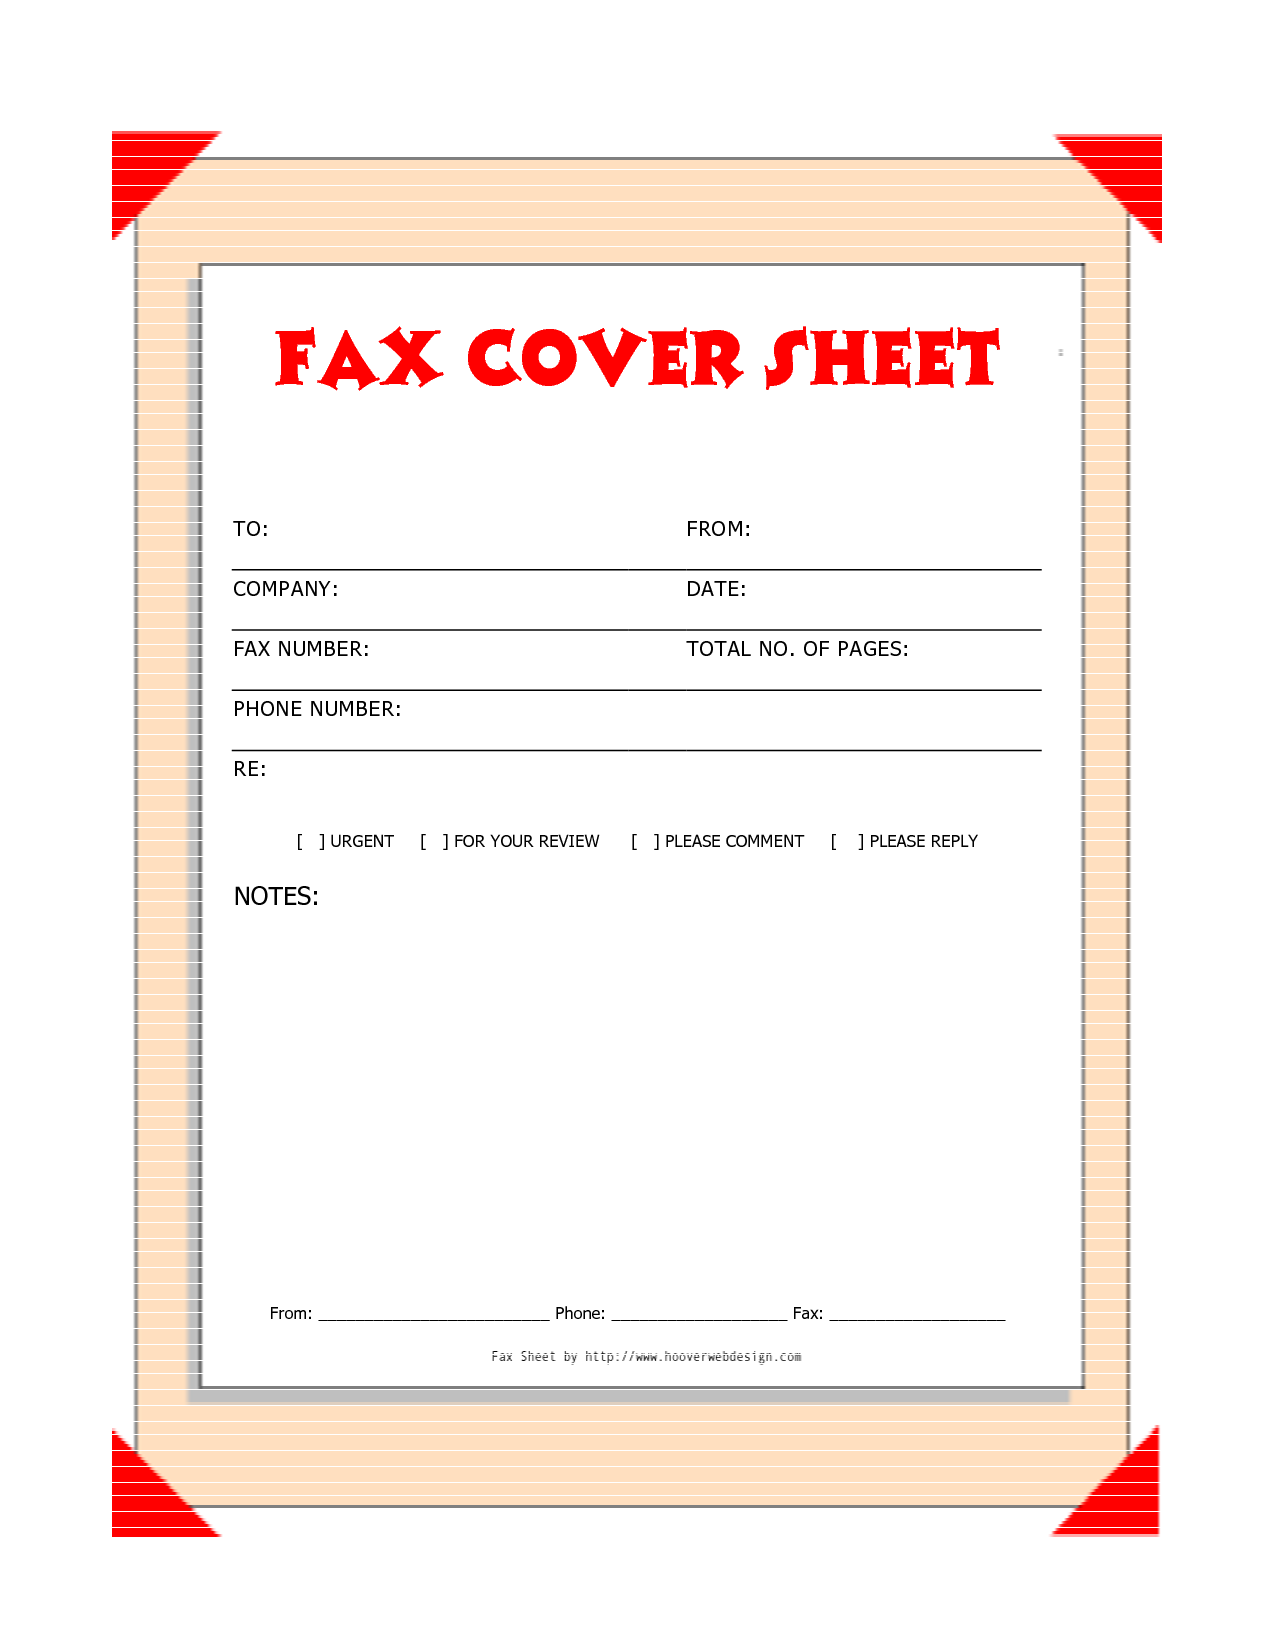 Free Downloads Fax Covers Sheets | Free Printable Fax Cover Sheet Template  Red   Download As  Blank Fax Cover Sheet Free